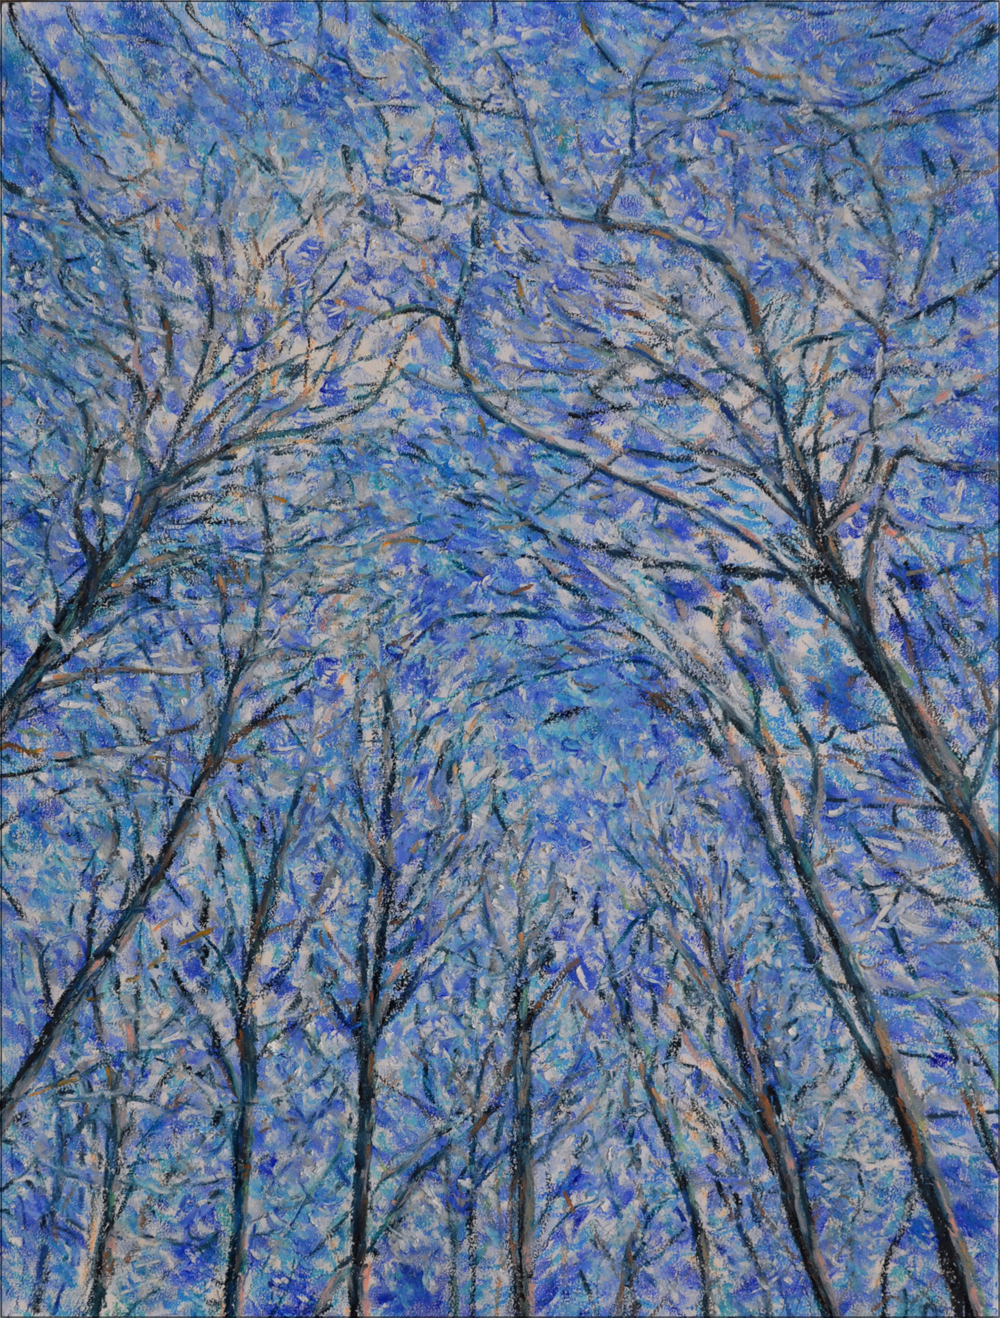 Cossonay forest no. 2. Oil pastel on paper, 75x60, 2016